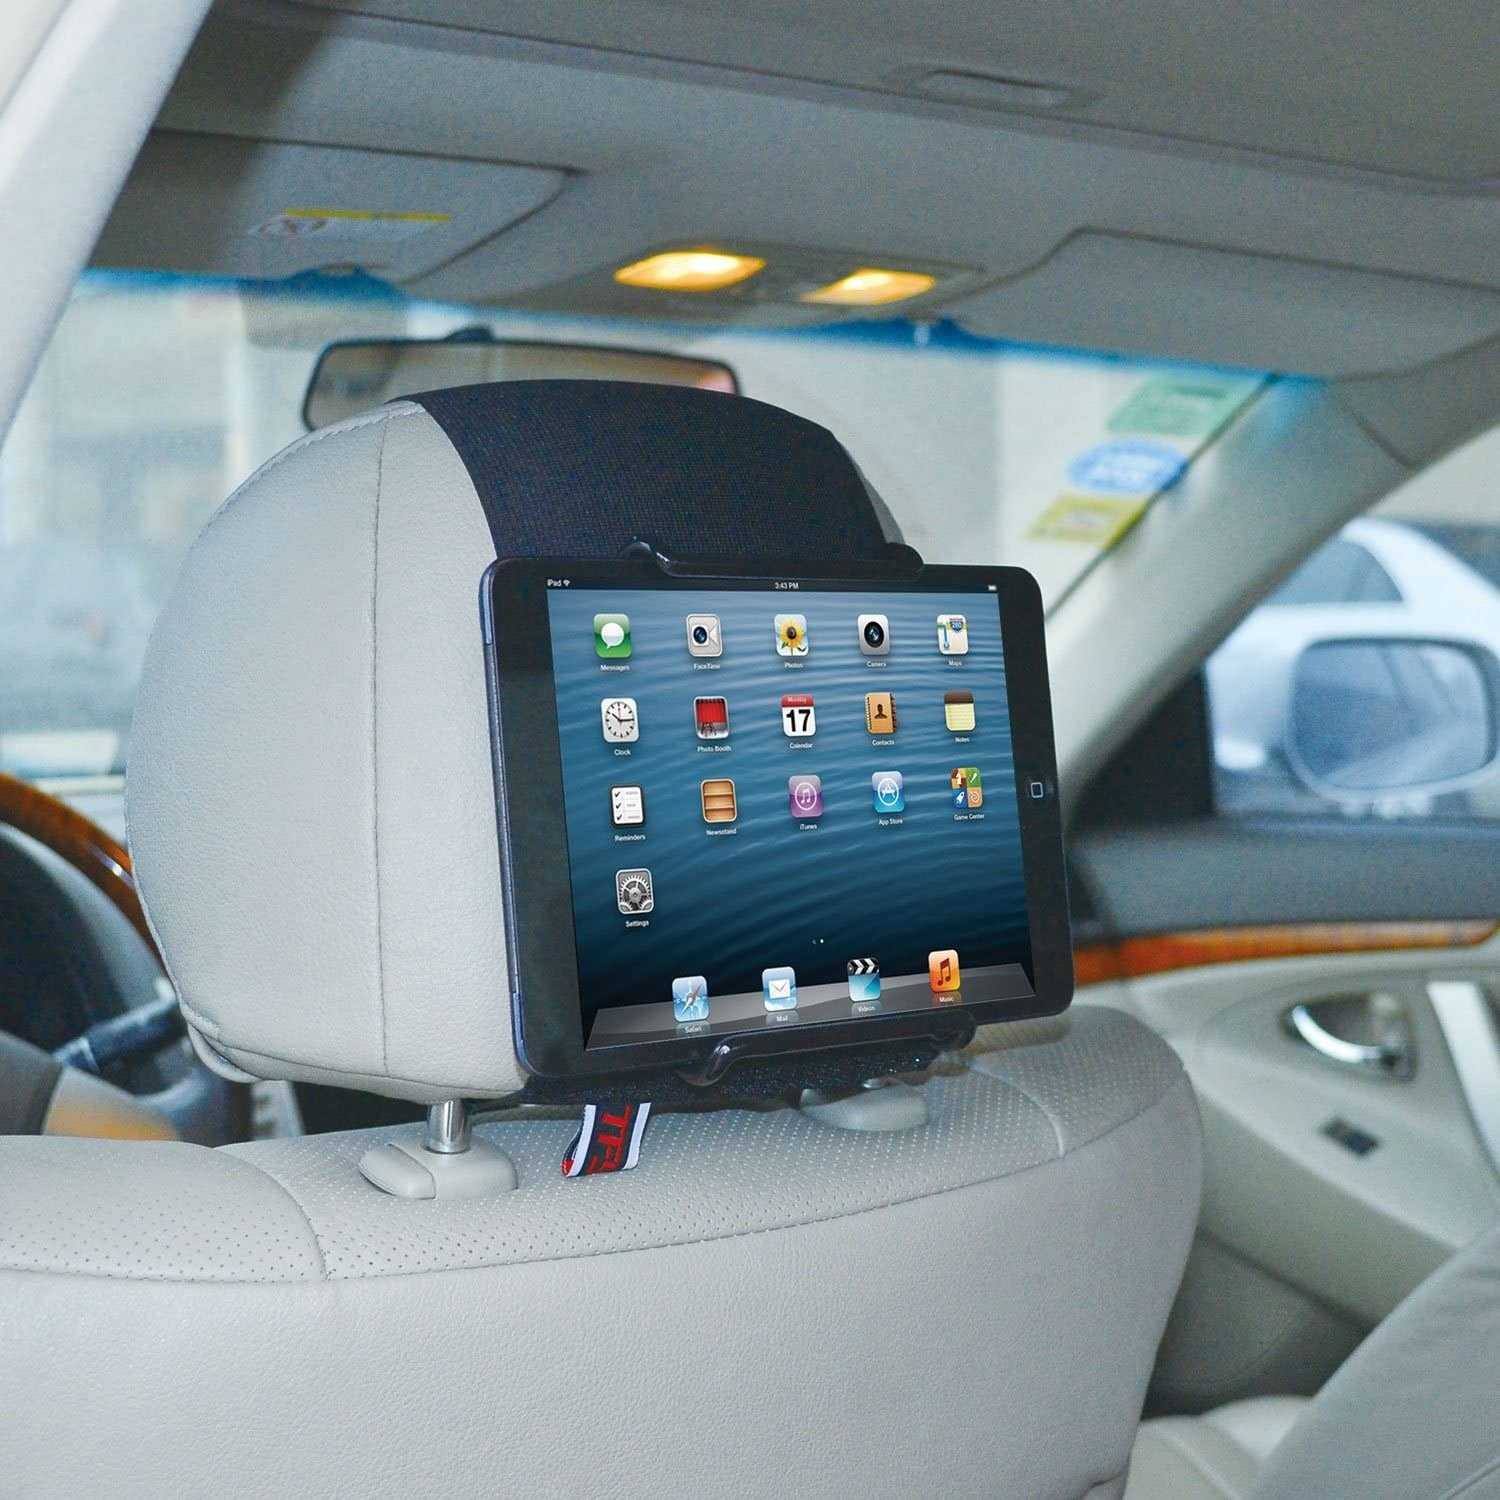 A tablet clipped into the headrest holder